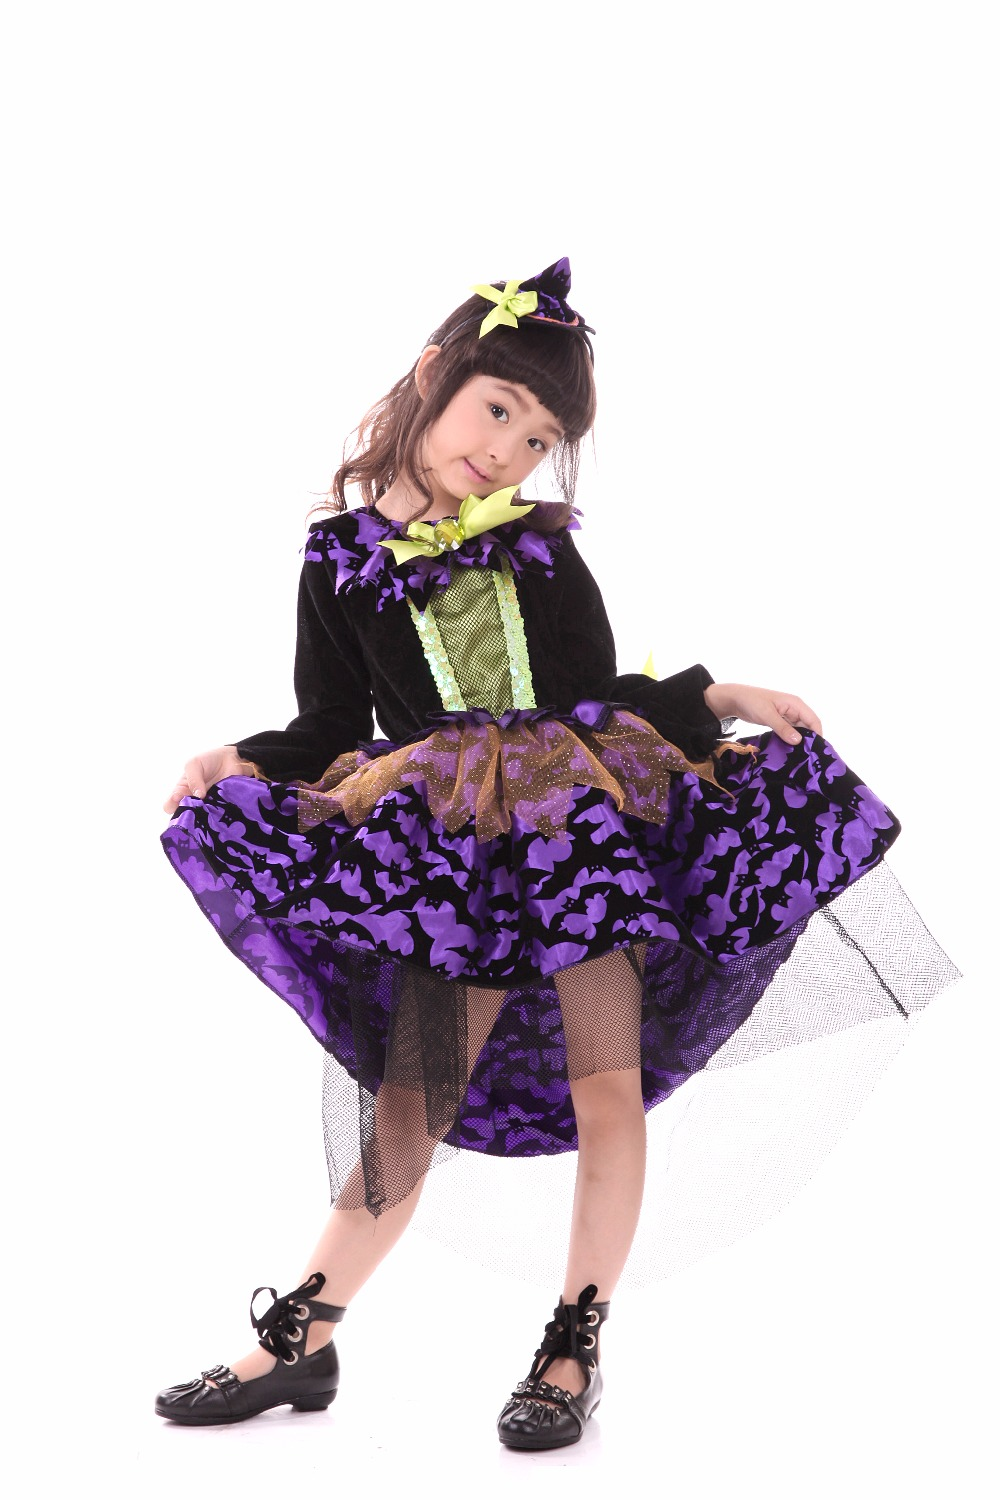 Halloween dress Holiday prop dance dress children's cosplay clothes kids clothing with lace princess party dress  cartoon witch luminous costumes glowing gloves shoes light clothing men dance clothes for holiday lighting decor